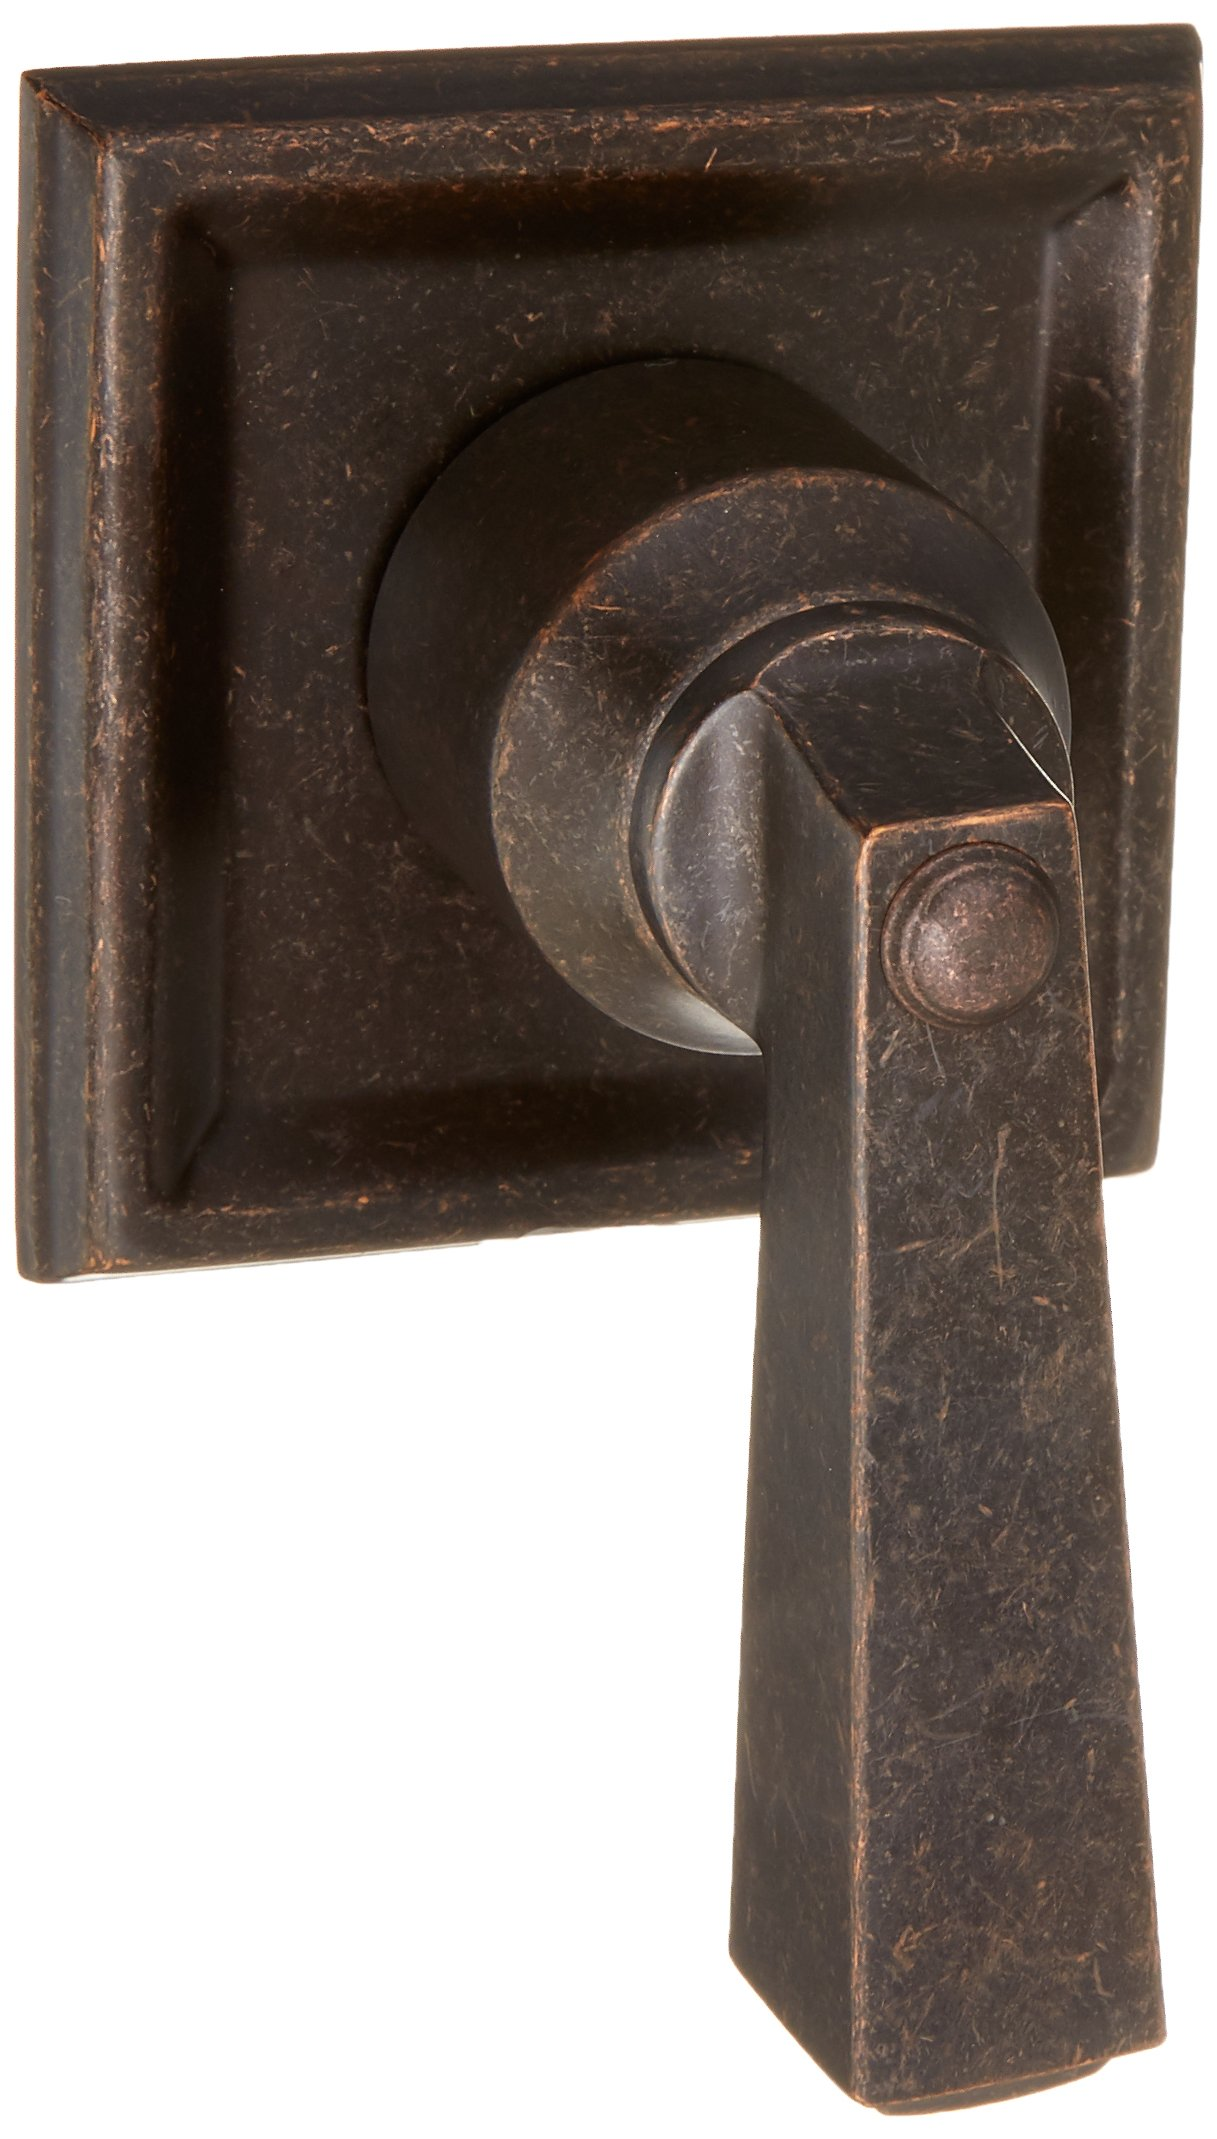 American Standard T555.700.224 Town Square On/Off Volume Control Trim Kit with Metal Lever Handle, Oil Rubbed Bronze by American Standard